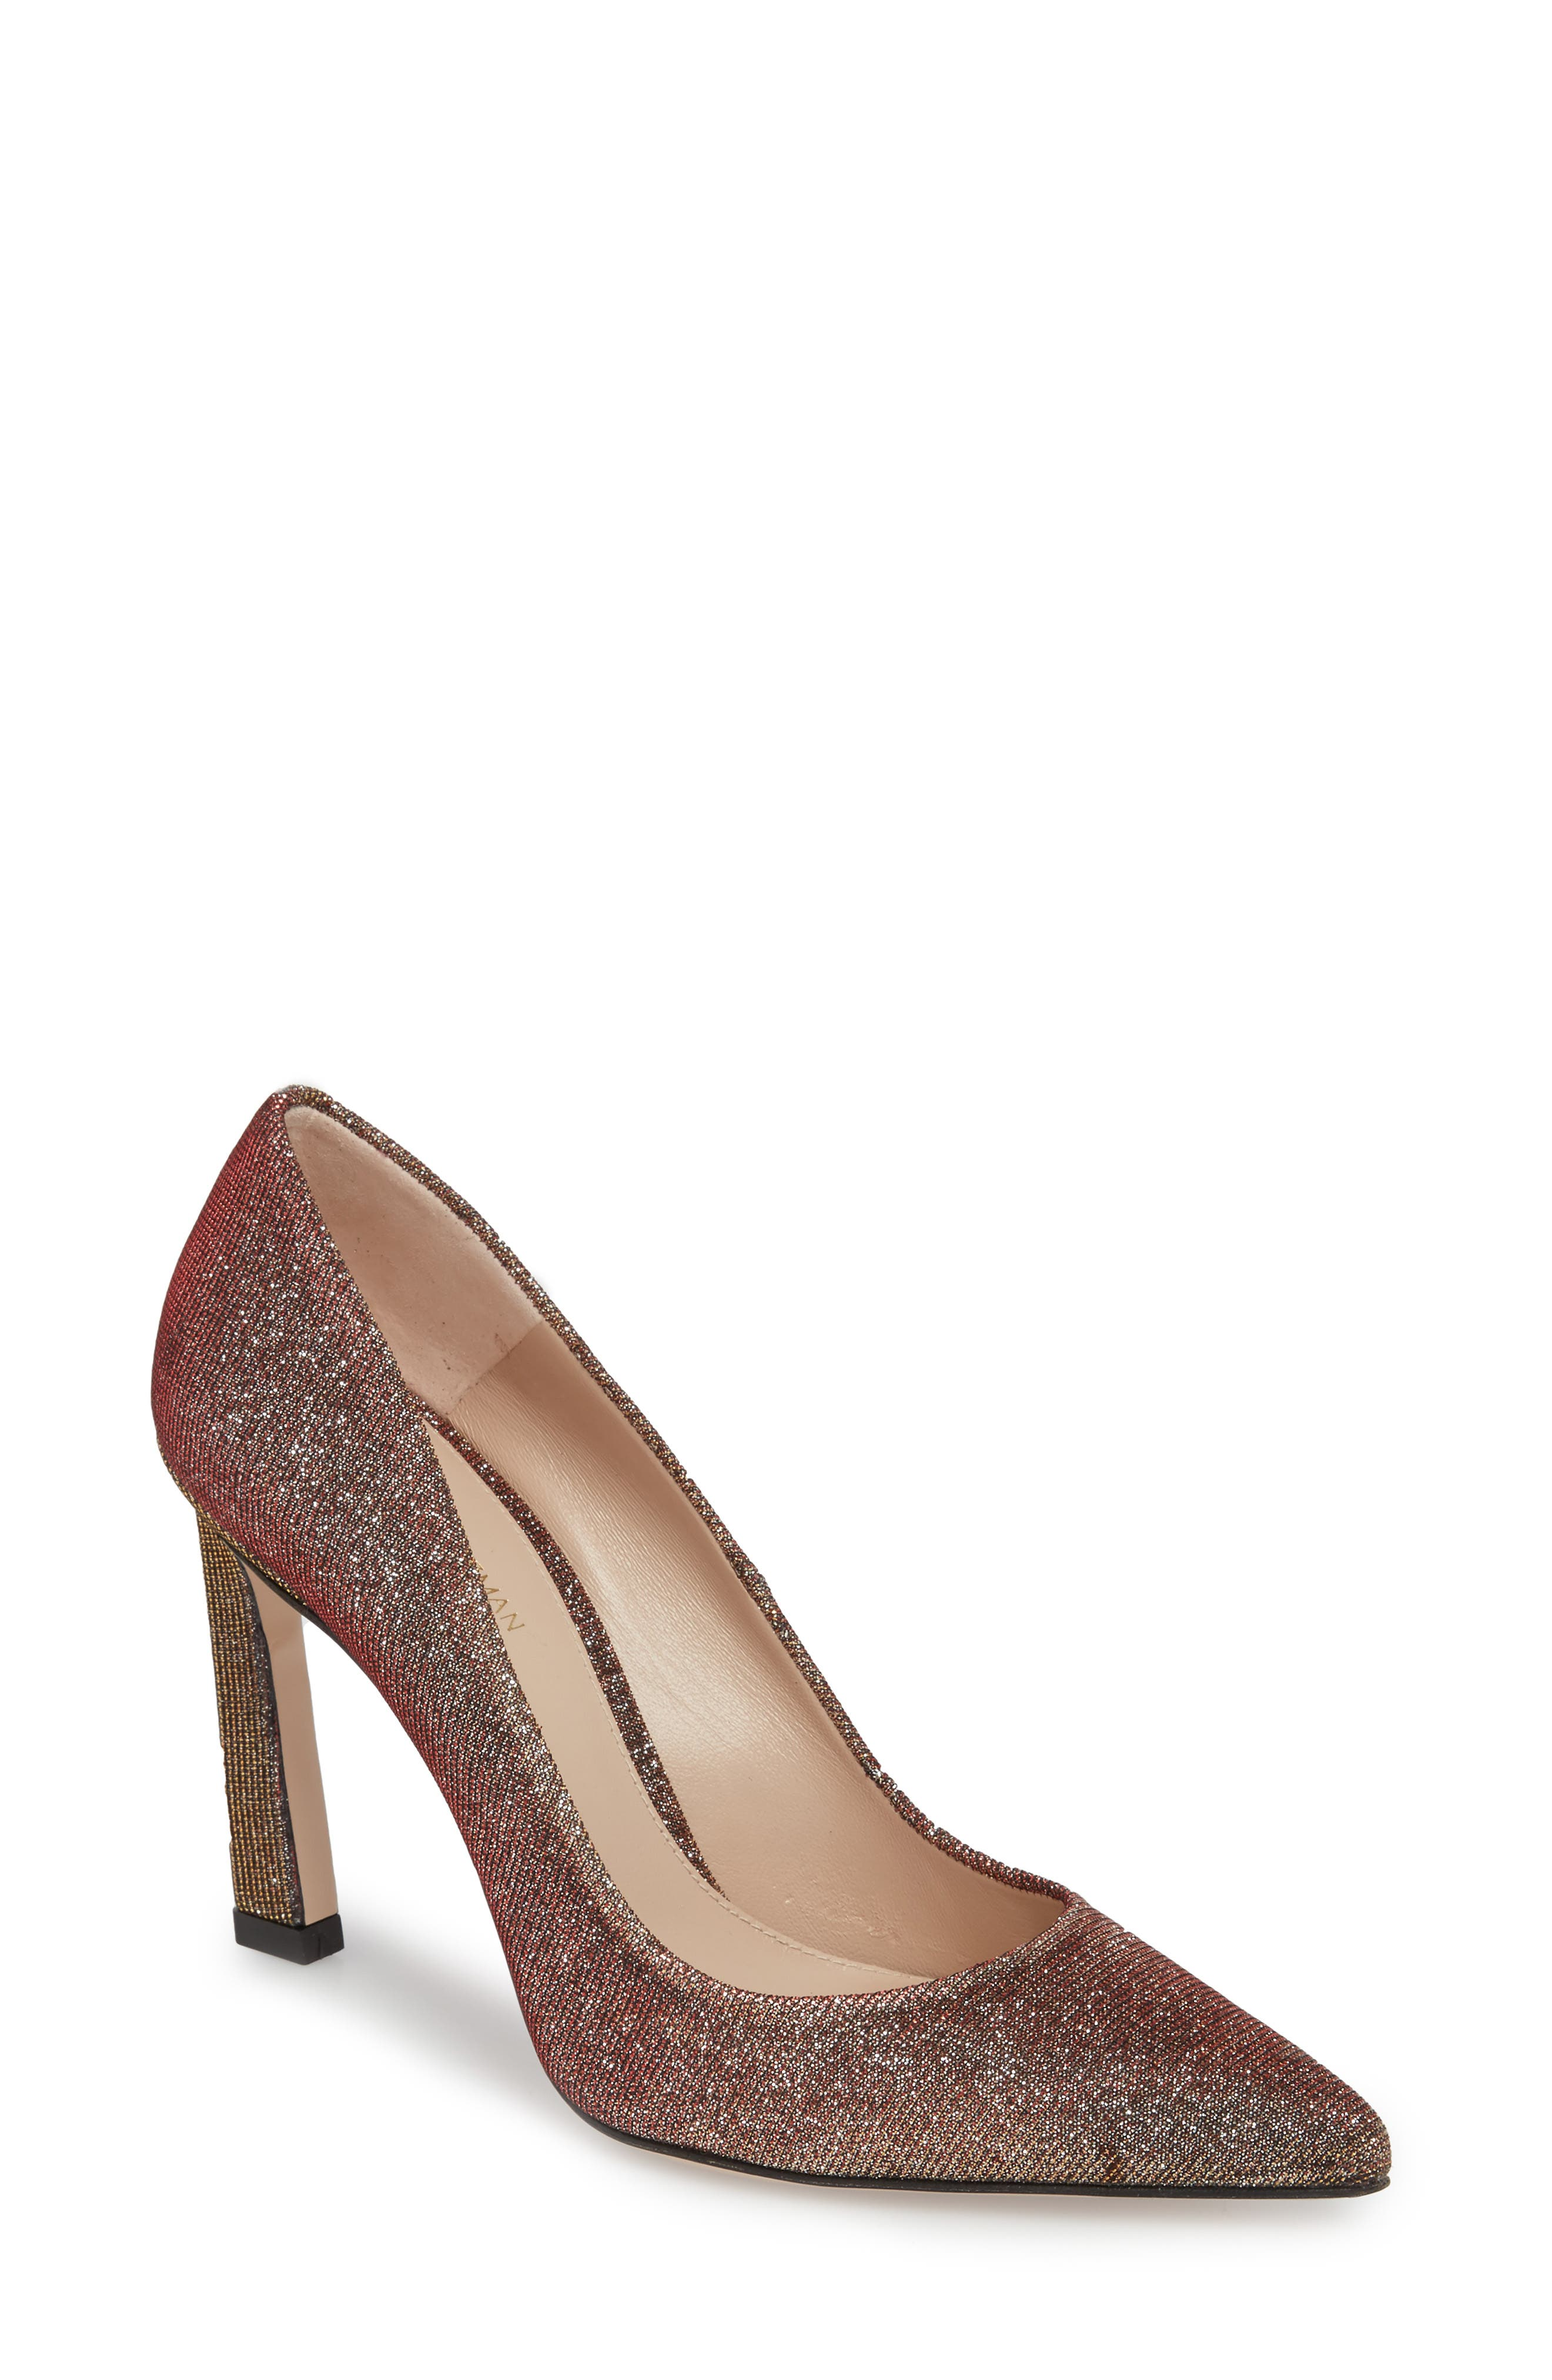 Chicster Pointy Toe Pump,                         Main,                         color, Bronze Nighttime